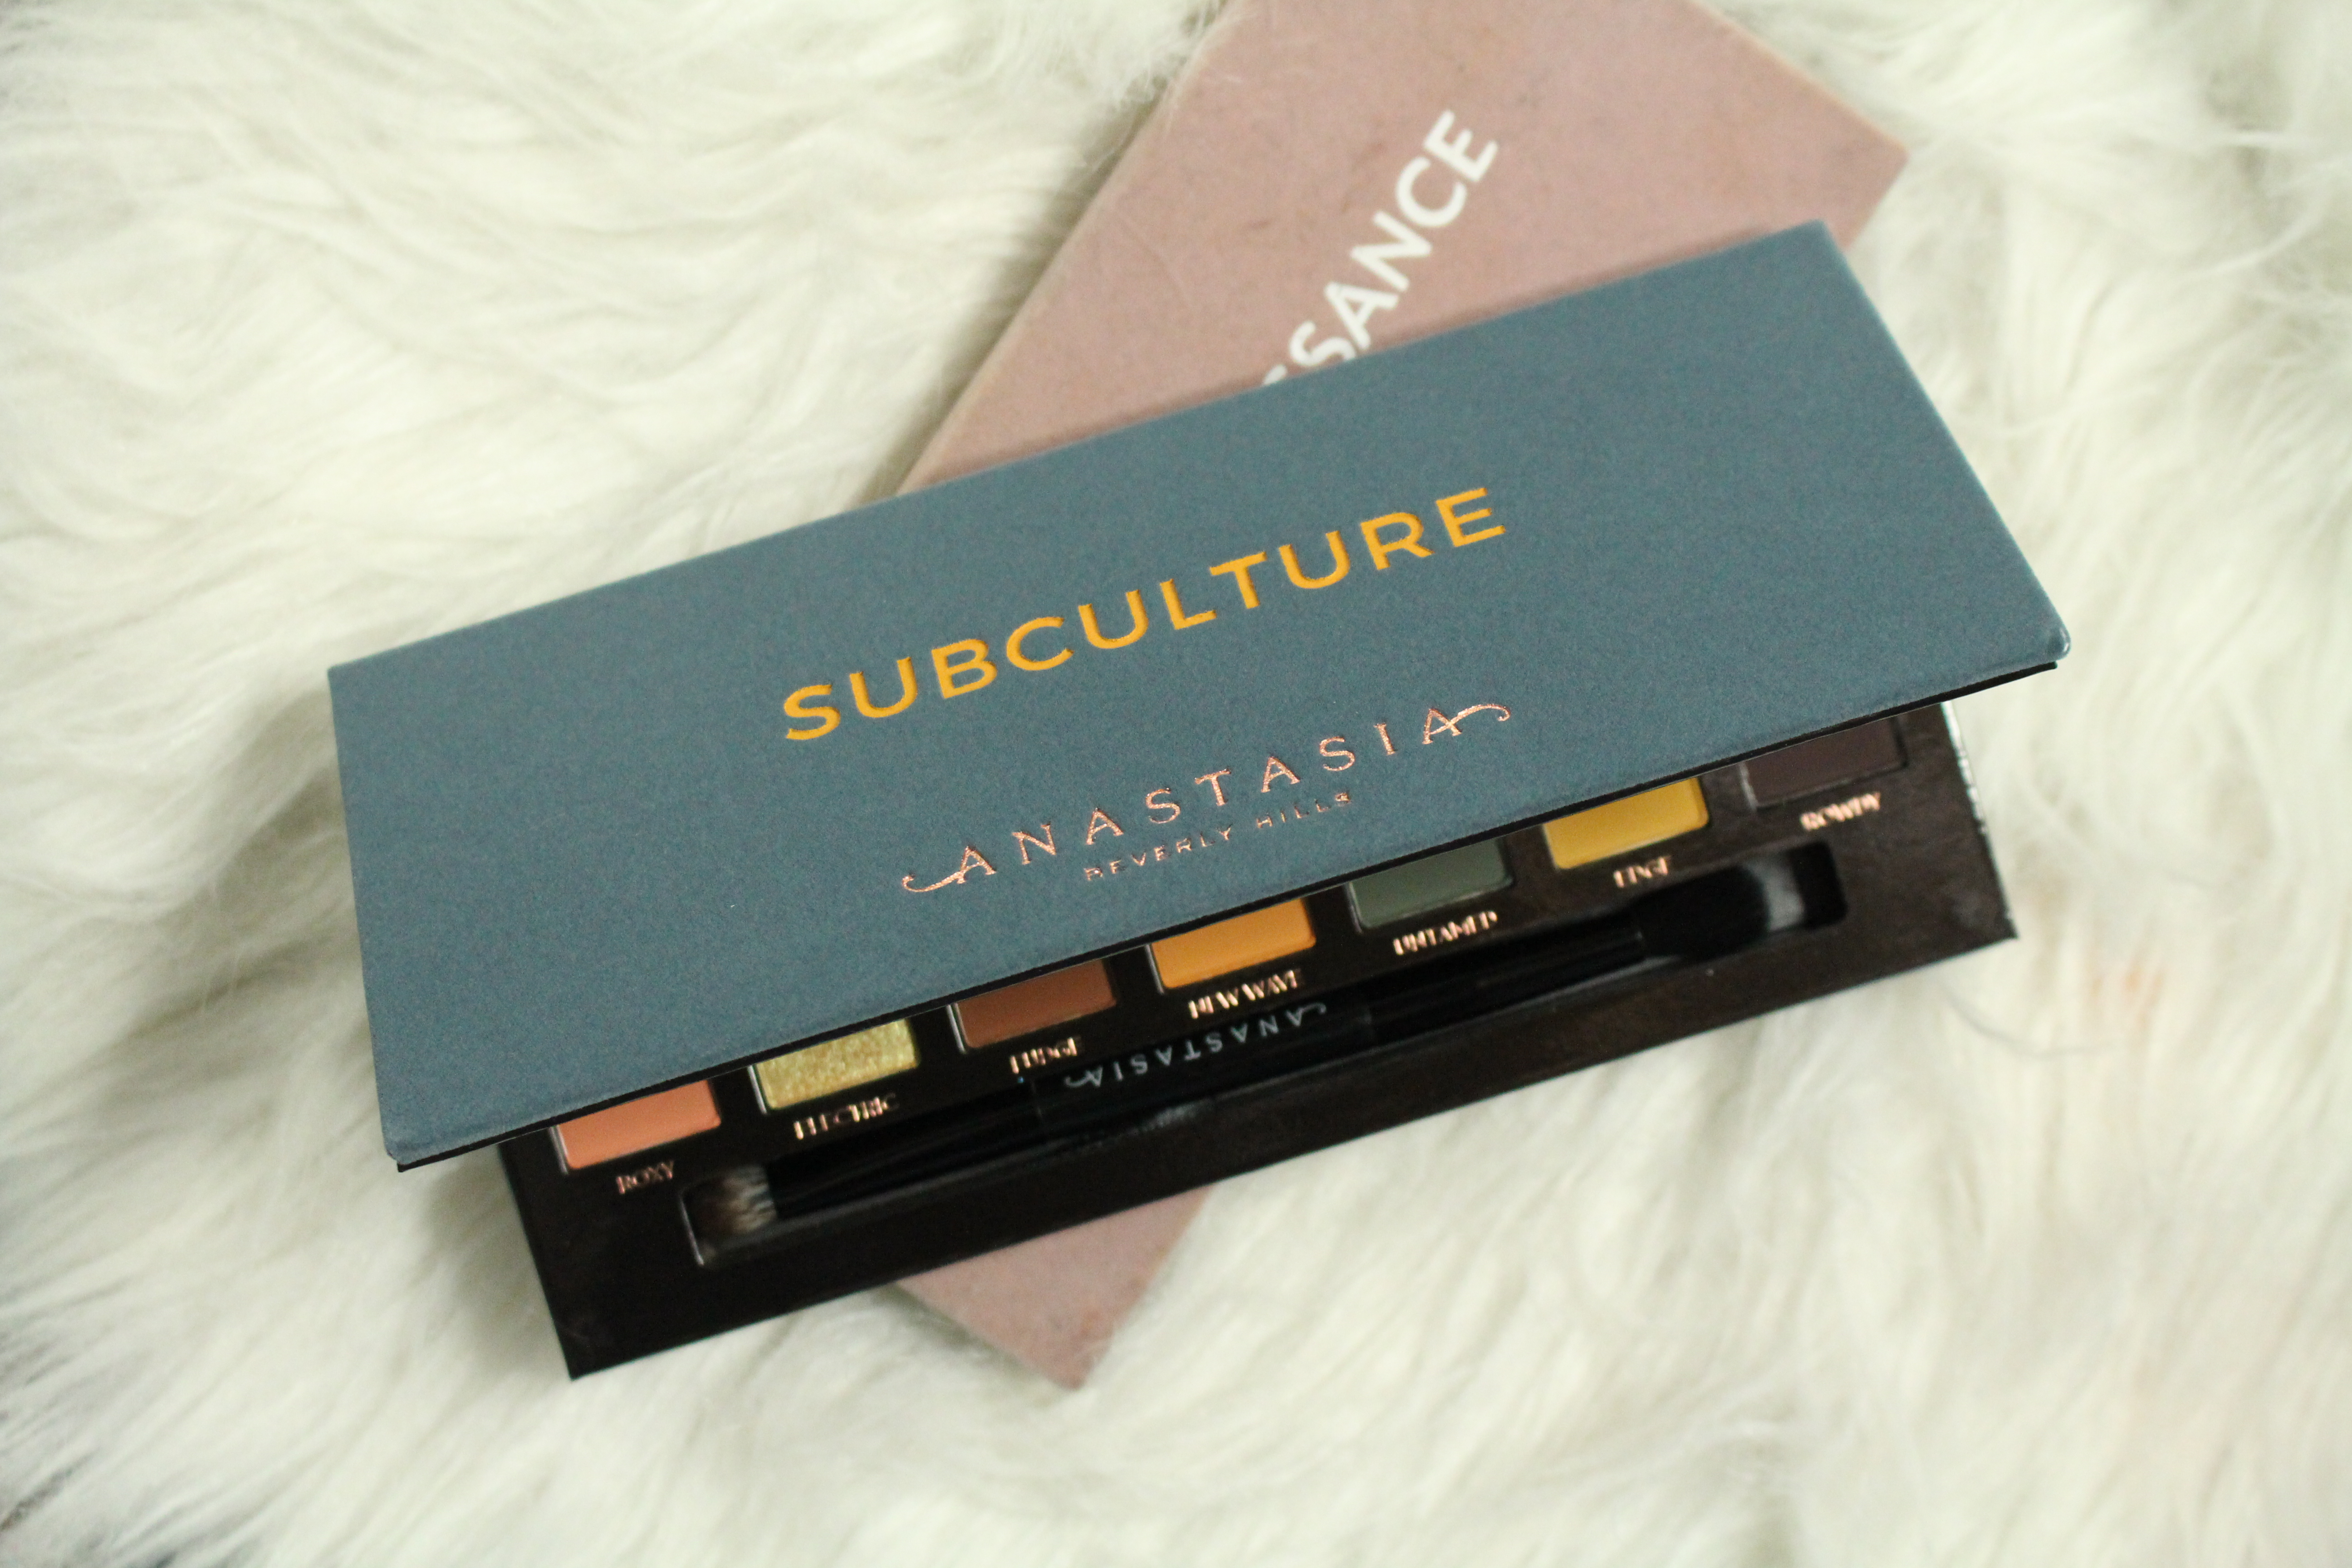 anastasia subculture palette review